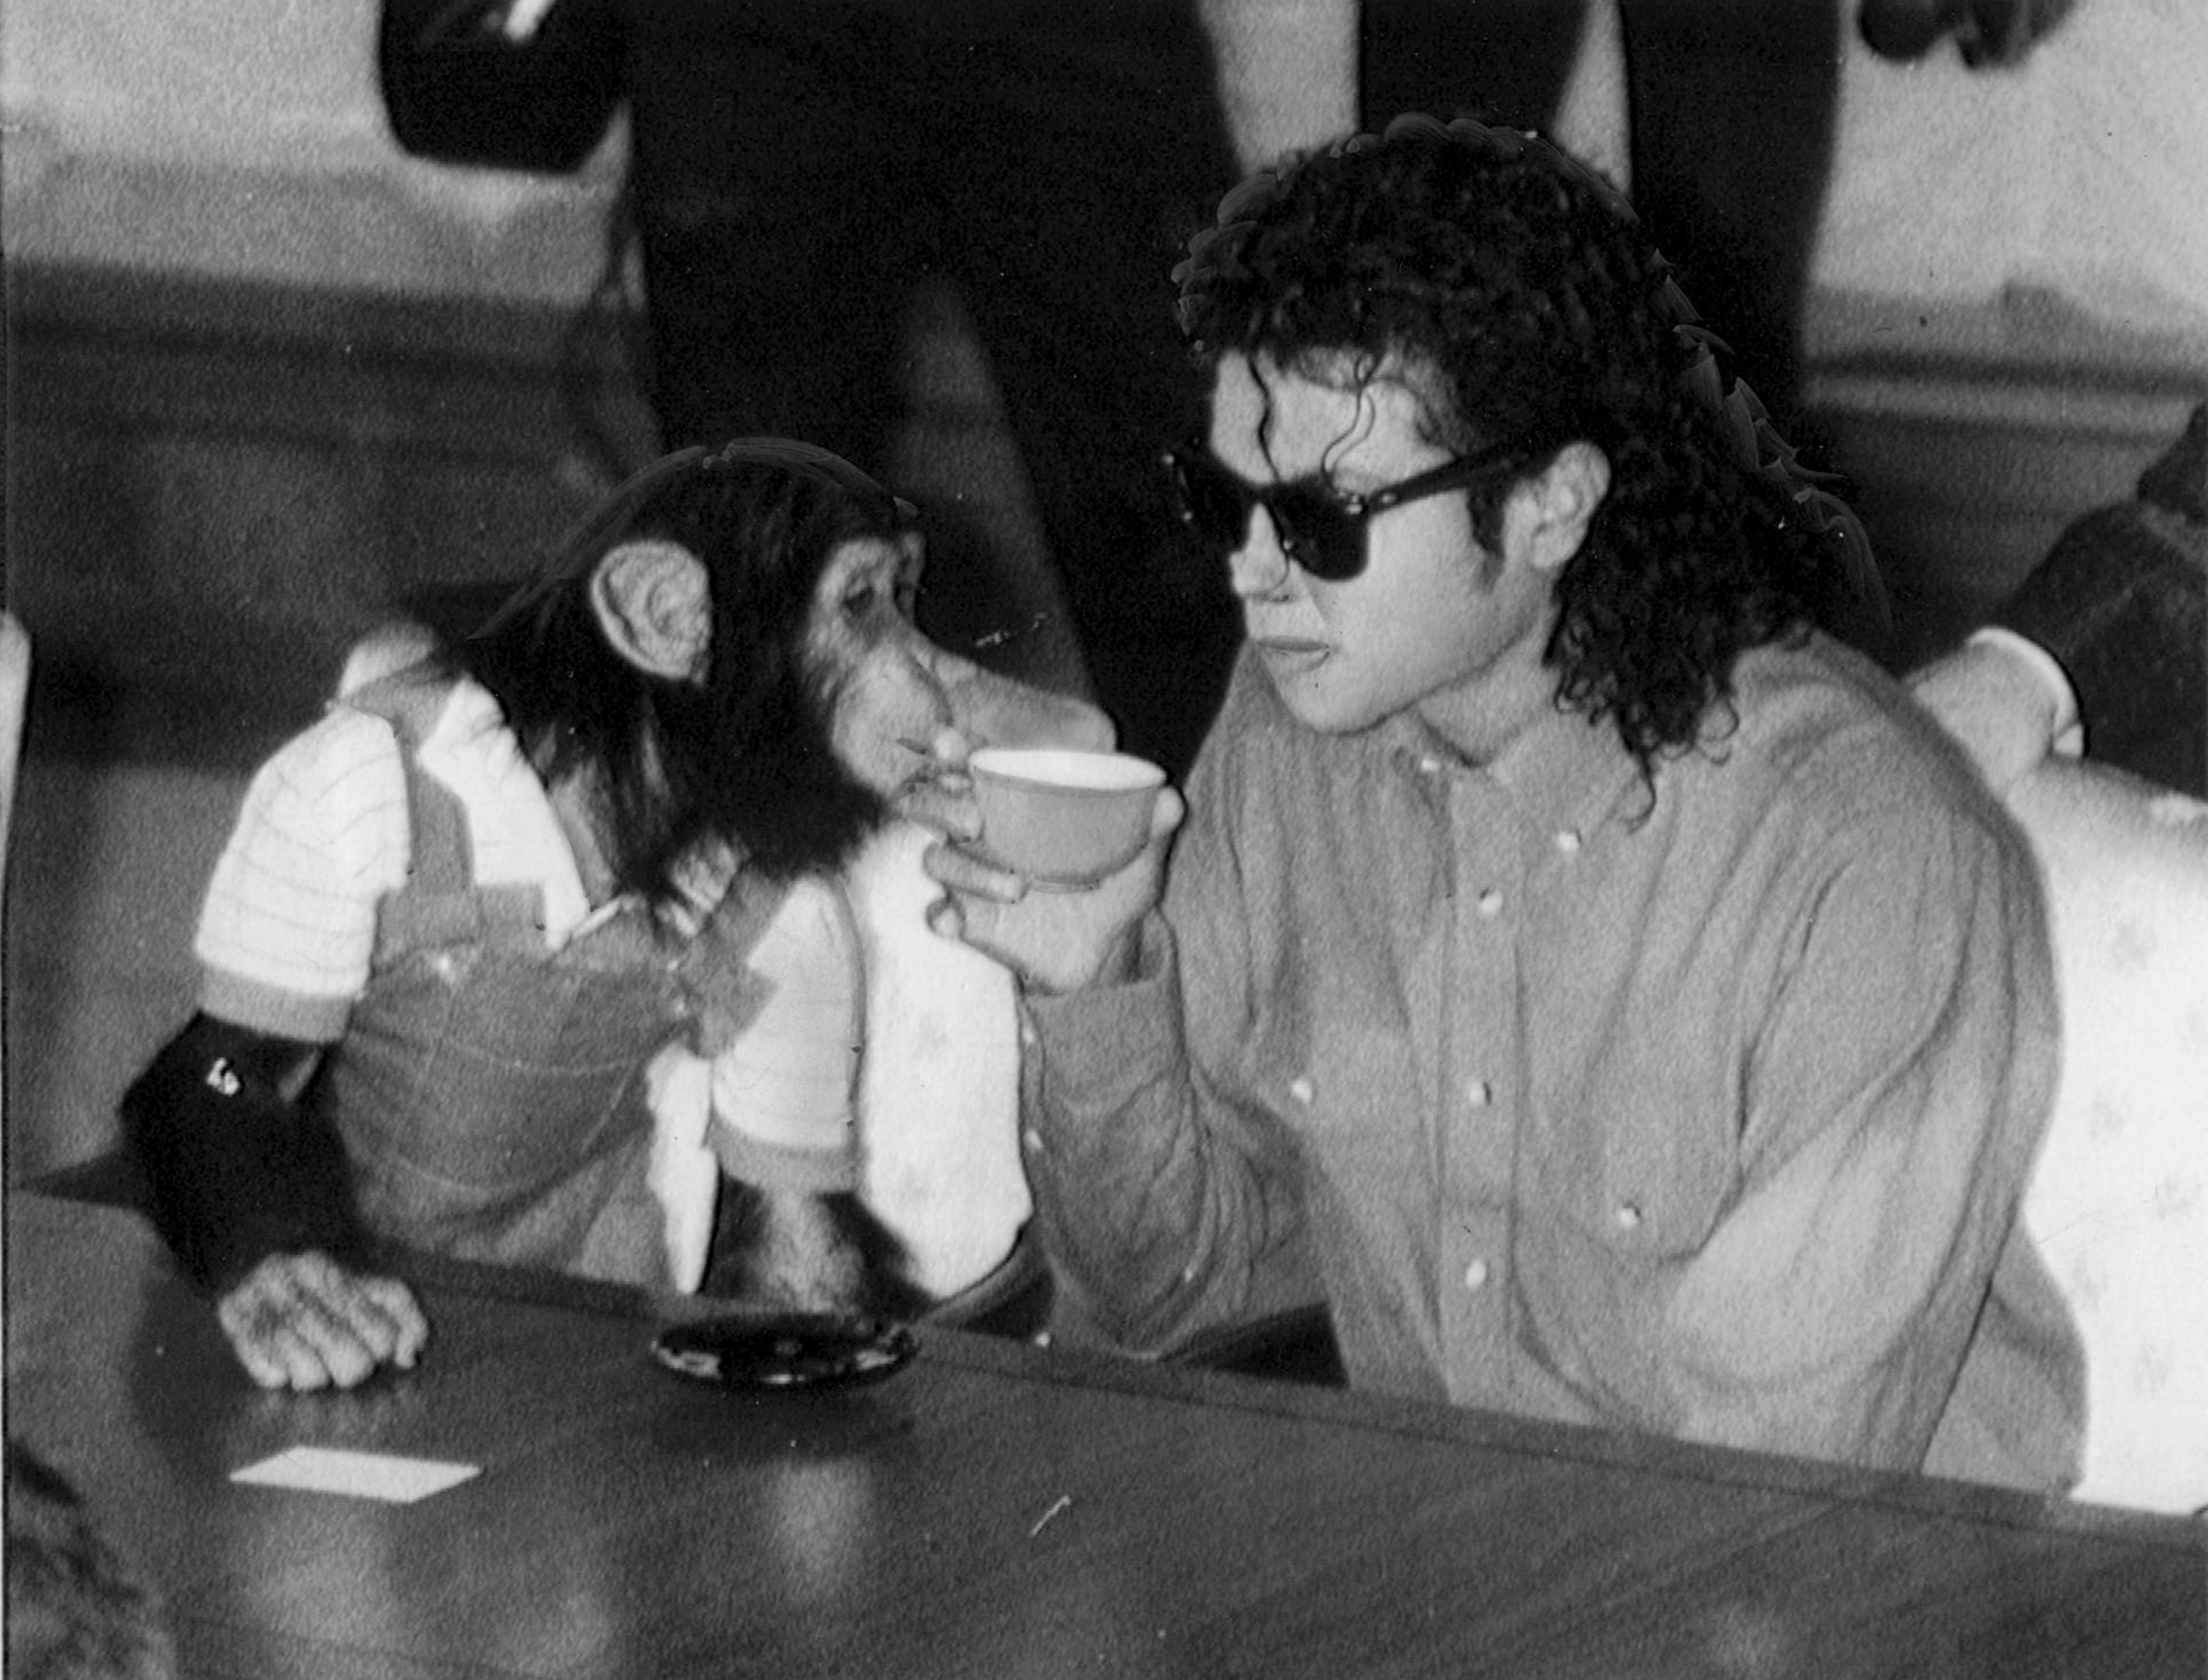 The story of Michael Jackson's pet chimpanzee Bubbles is being made into a film